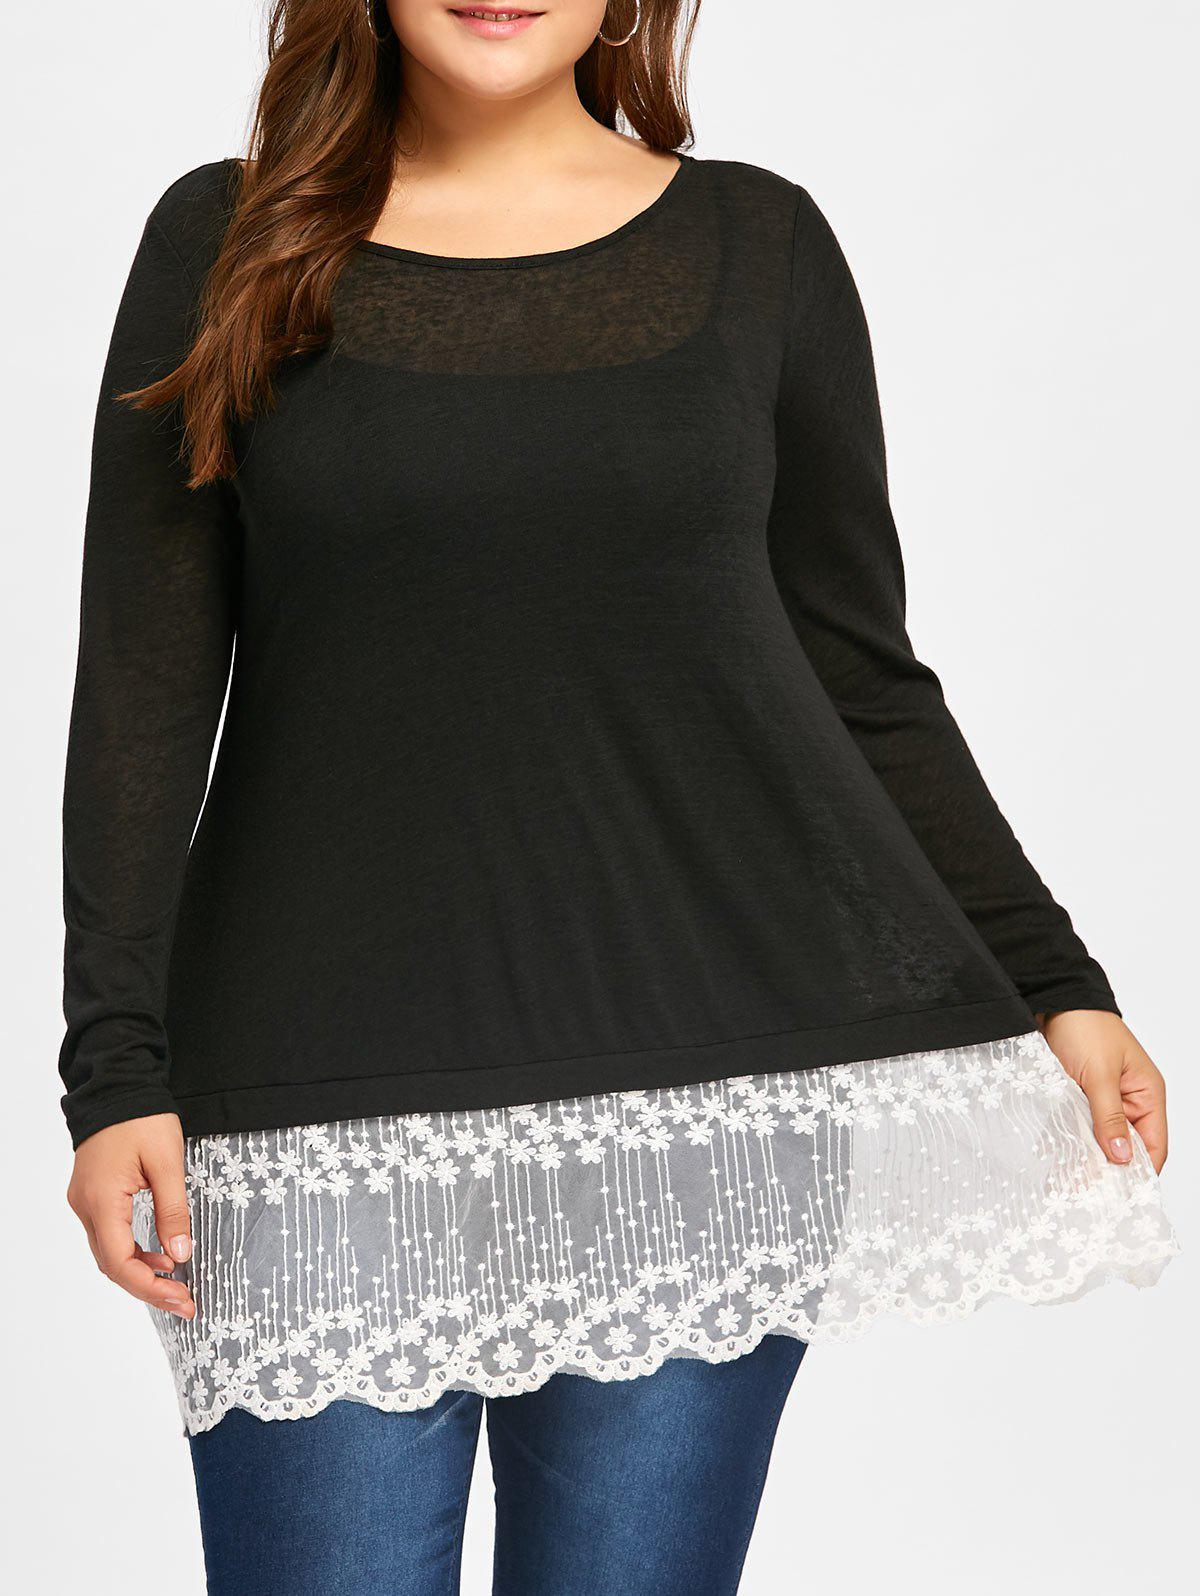 Plus Size Lace Panel Scolloped Tee with Cami TopWOMEN<br><br>Size: 5XL; Color: BLACK; Material: Cotton,Lace,Polyester; Shirt Length: Long; Sleeve Length: Full; Collar: Scoop Neck; Style: Fashion; Season: Fall,Spring; Embellishment: Lace,Panel; Pattern Type: Floral; Weight: 0.3500kg; Package Contents: 1 x T-shirt 1 x Cami Top;